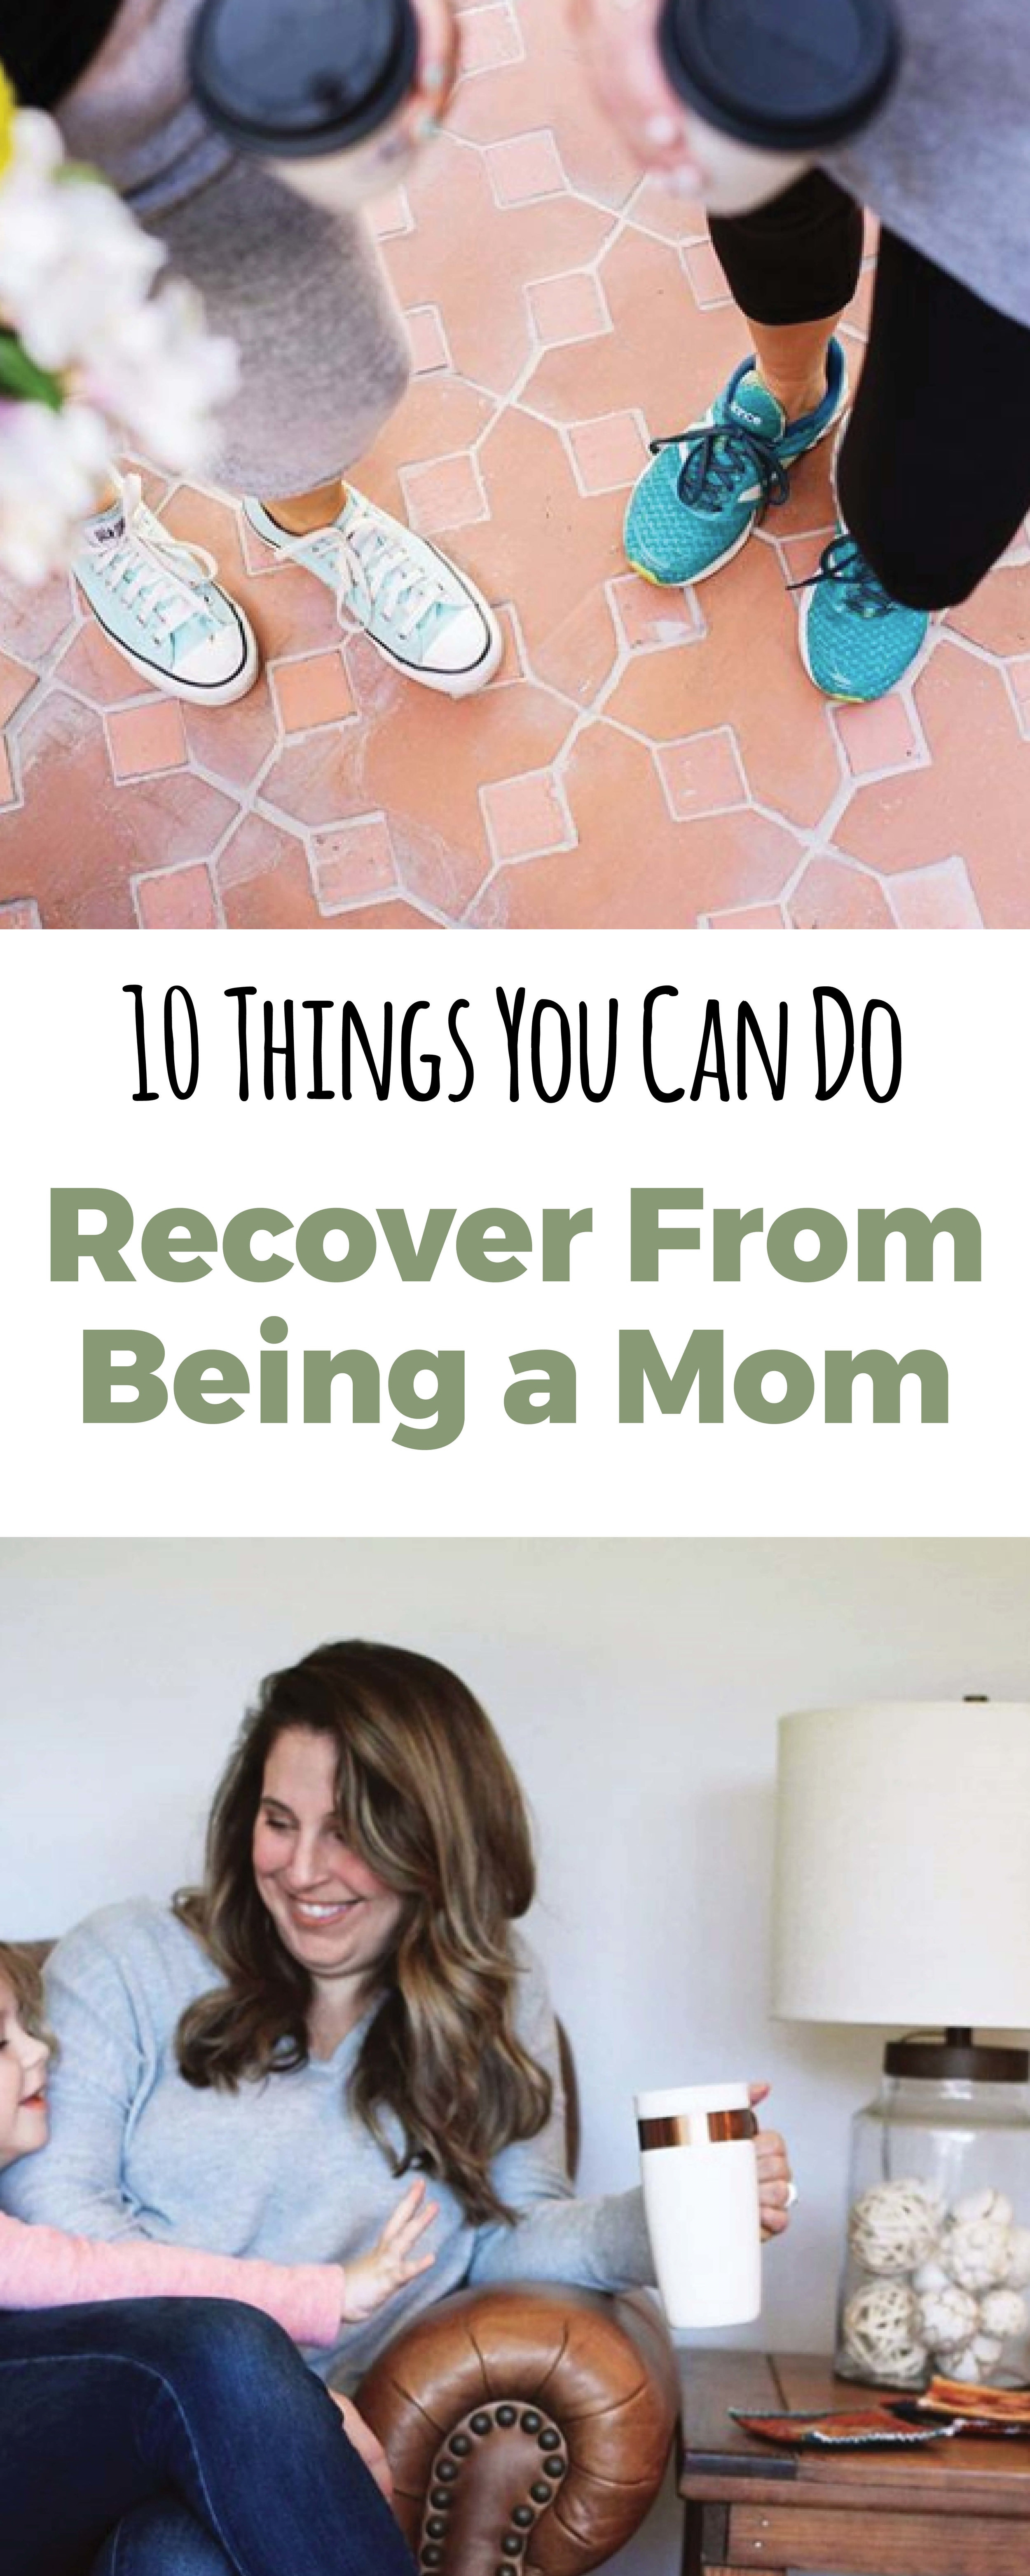 Being a mom is hard work. THis year I am going to do better taking care of myself. Here are some great tips.